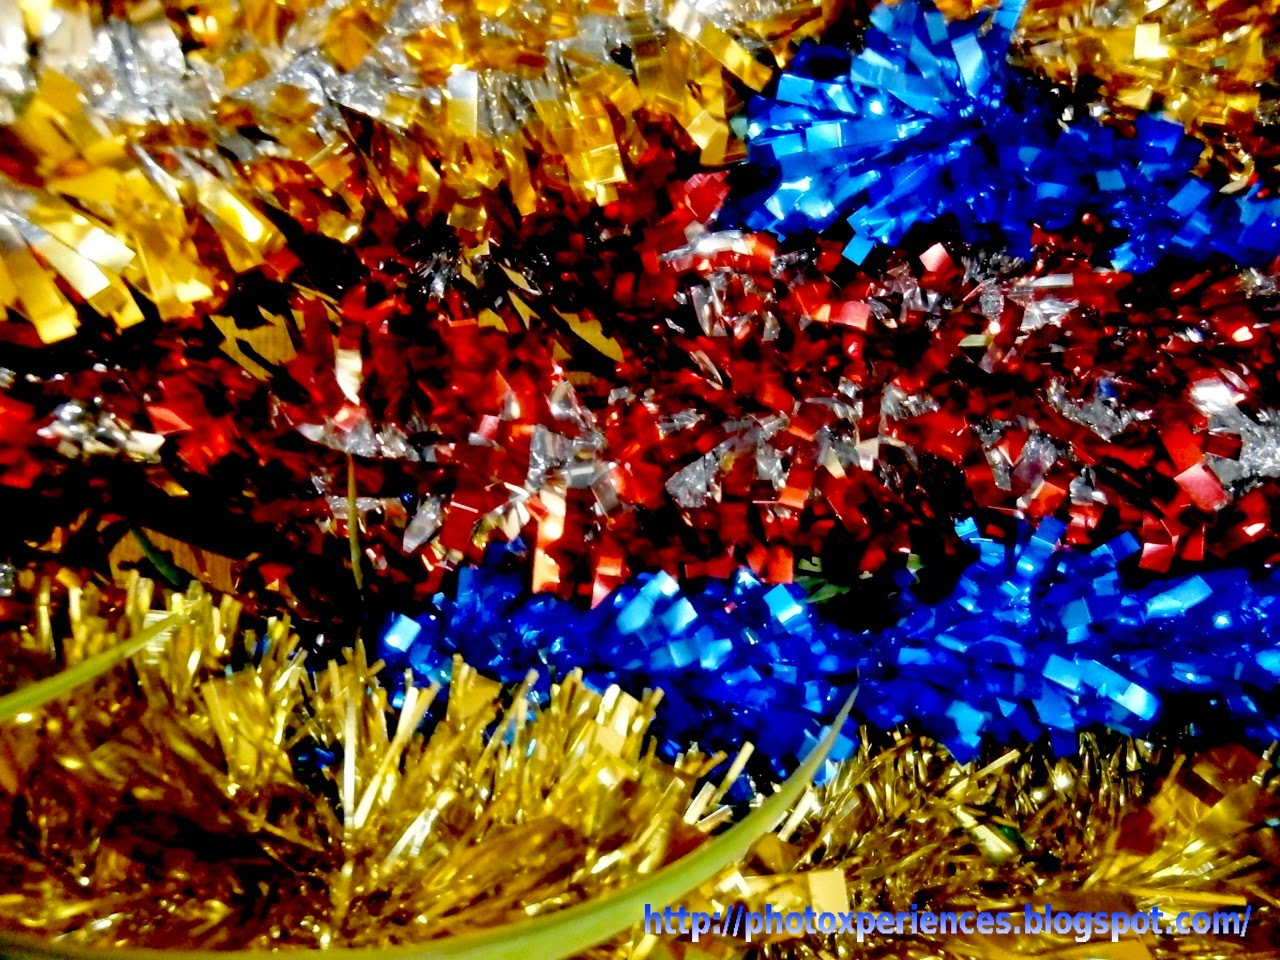 Colored garlands - Guirnaldas de colores